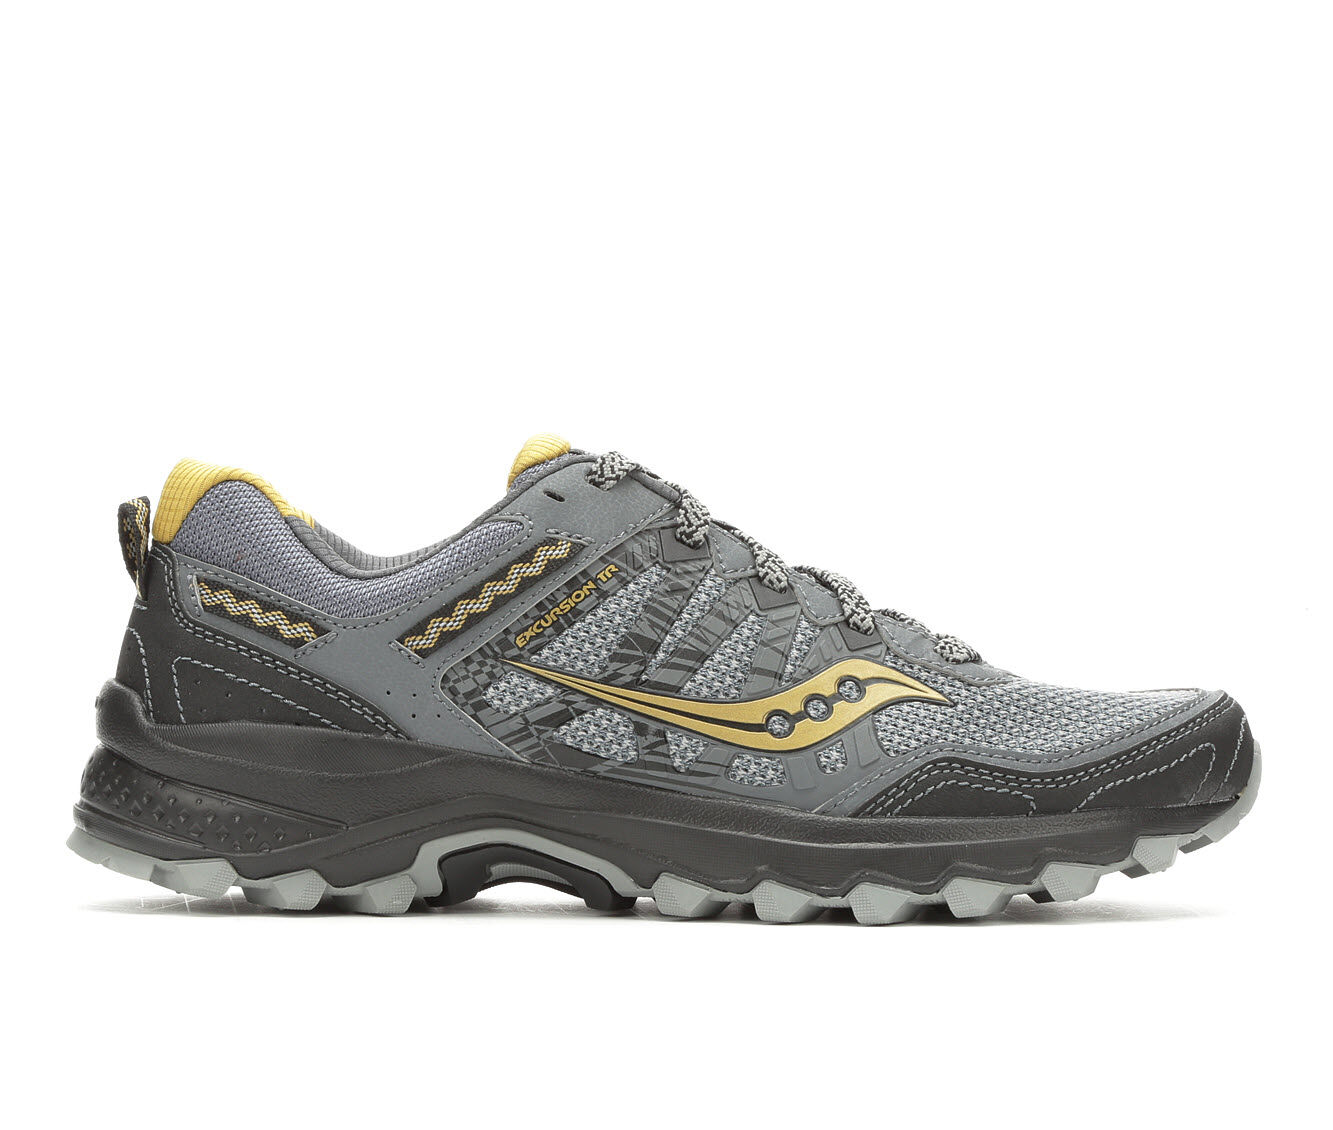 Best Quality Men's Saucony Excursion TR12 Trail Running Shoes Grey/Blk/Yellow